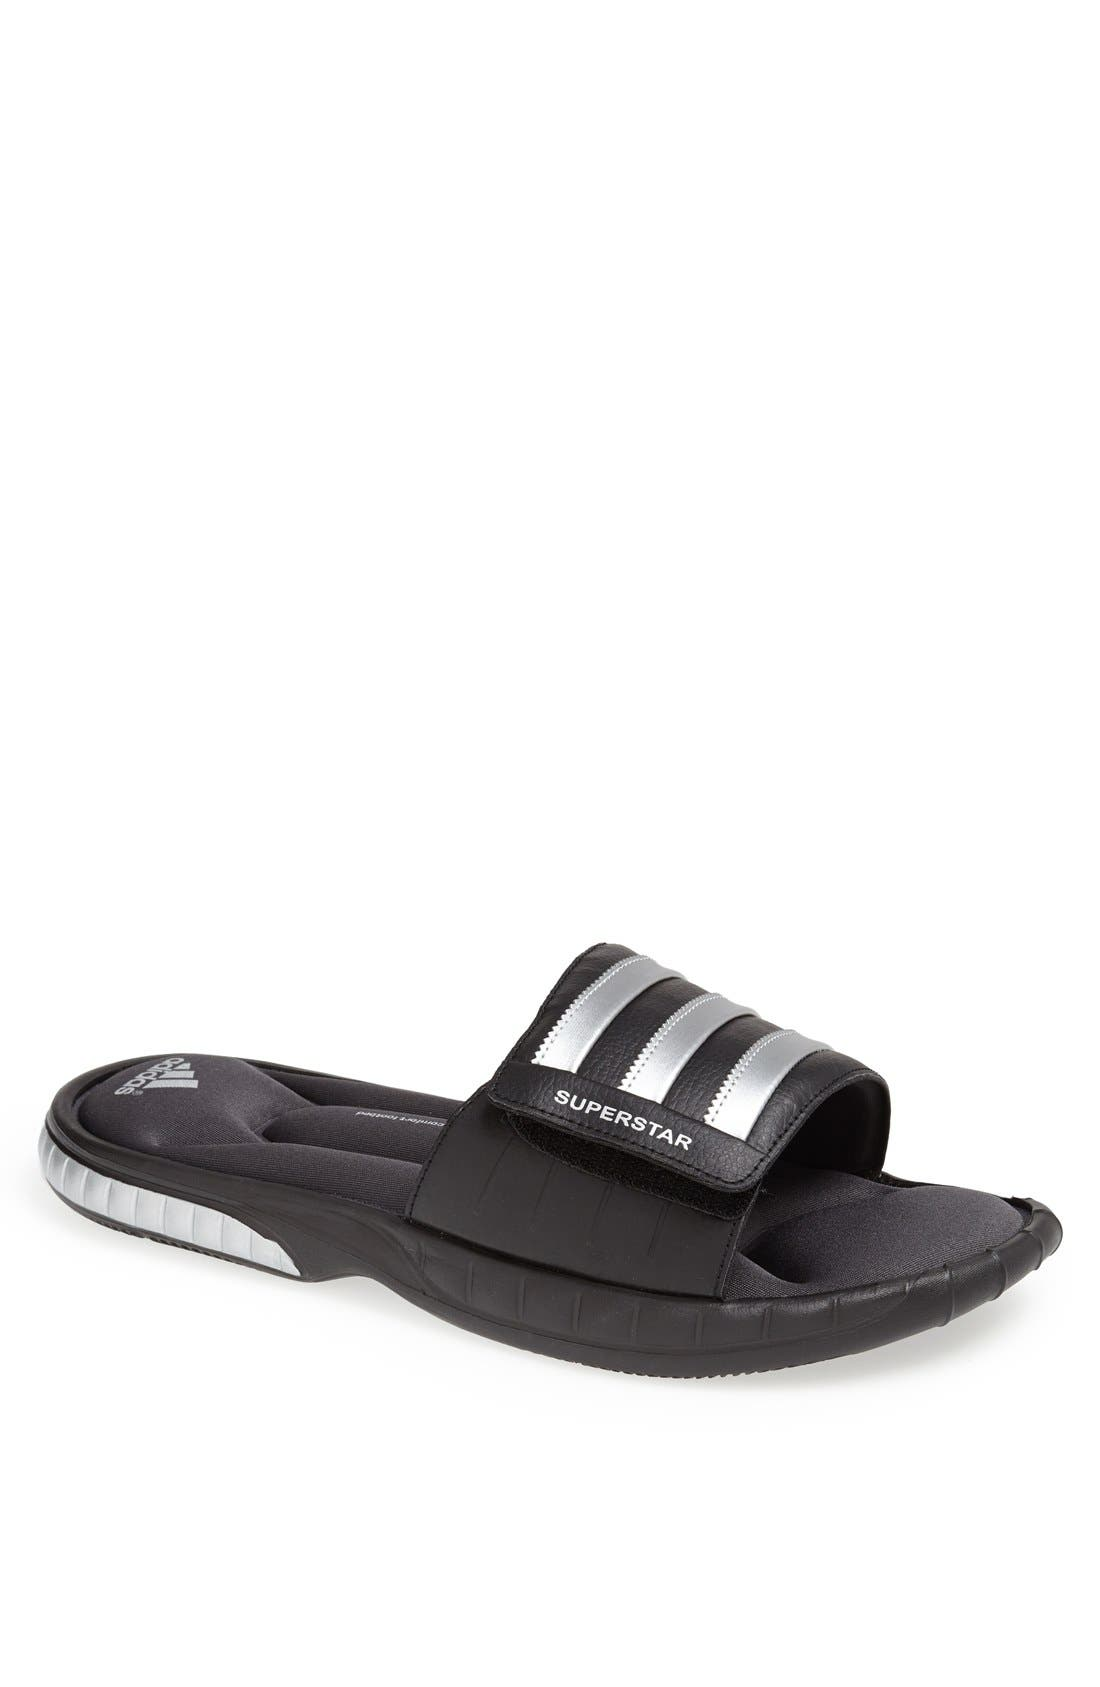 Alternate Image 1 Selected - adidas Superstar 3G Slide Sandal